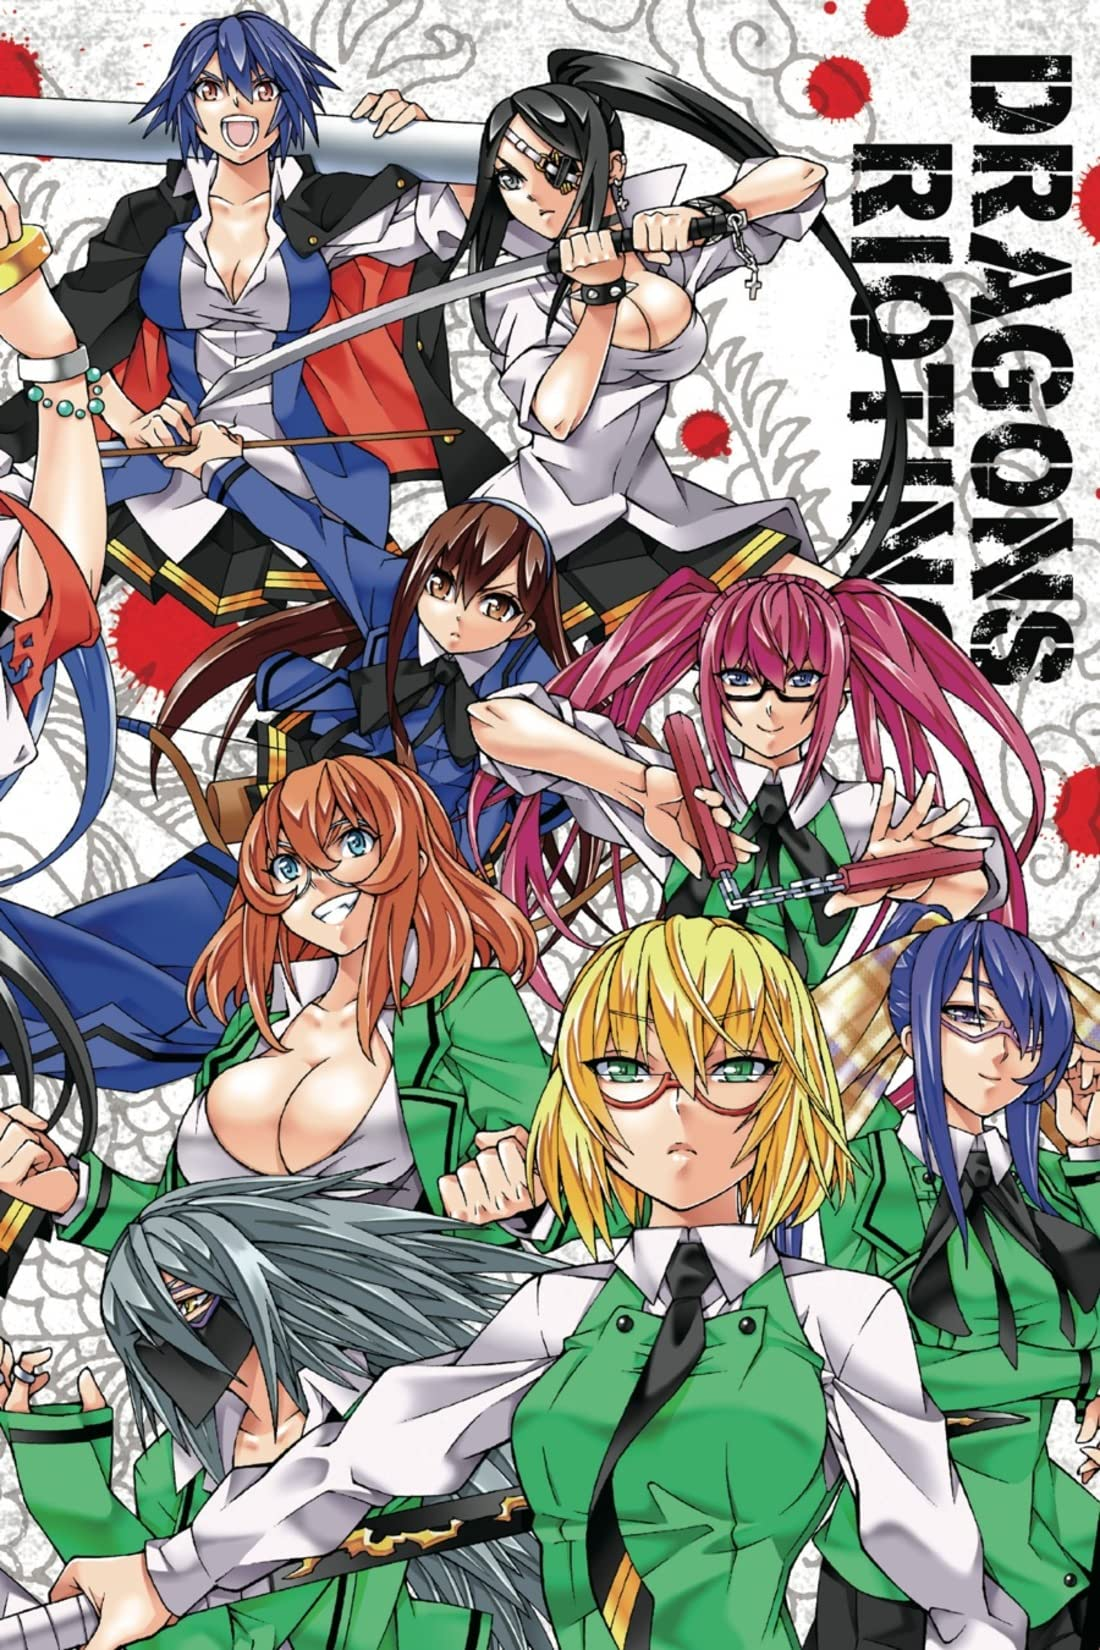 Dragons Rioting Vol. 6